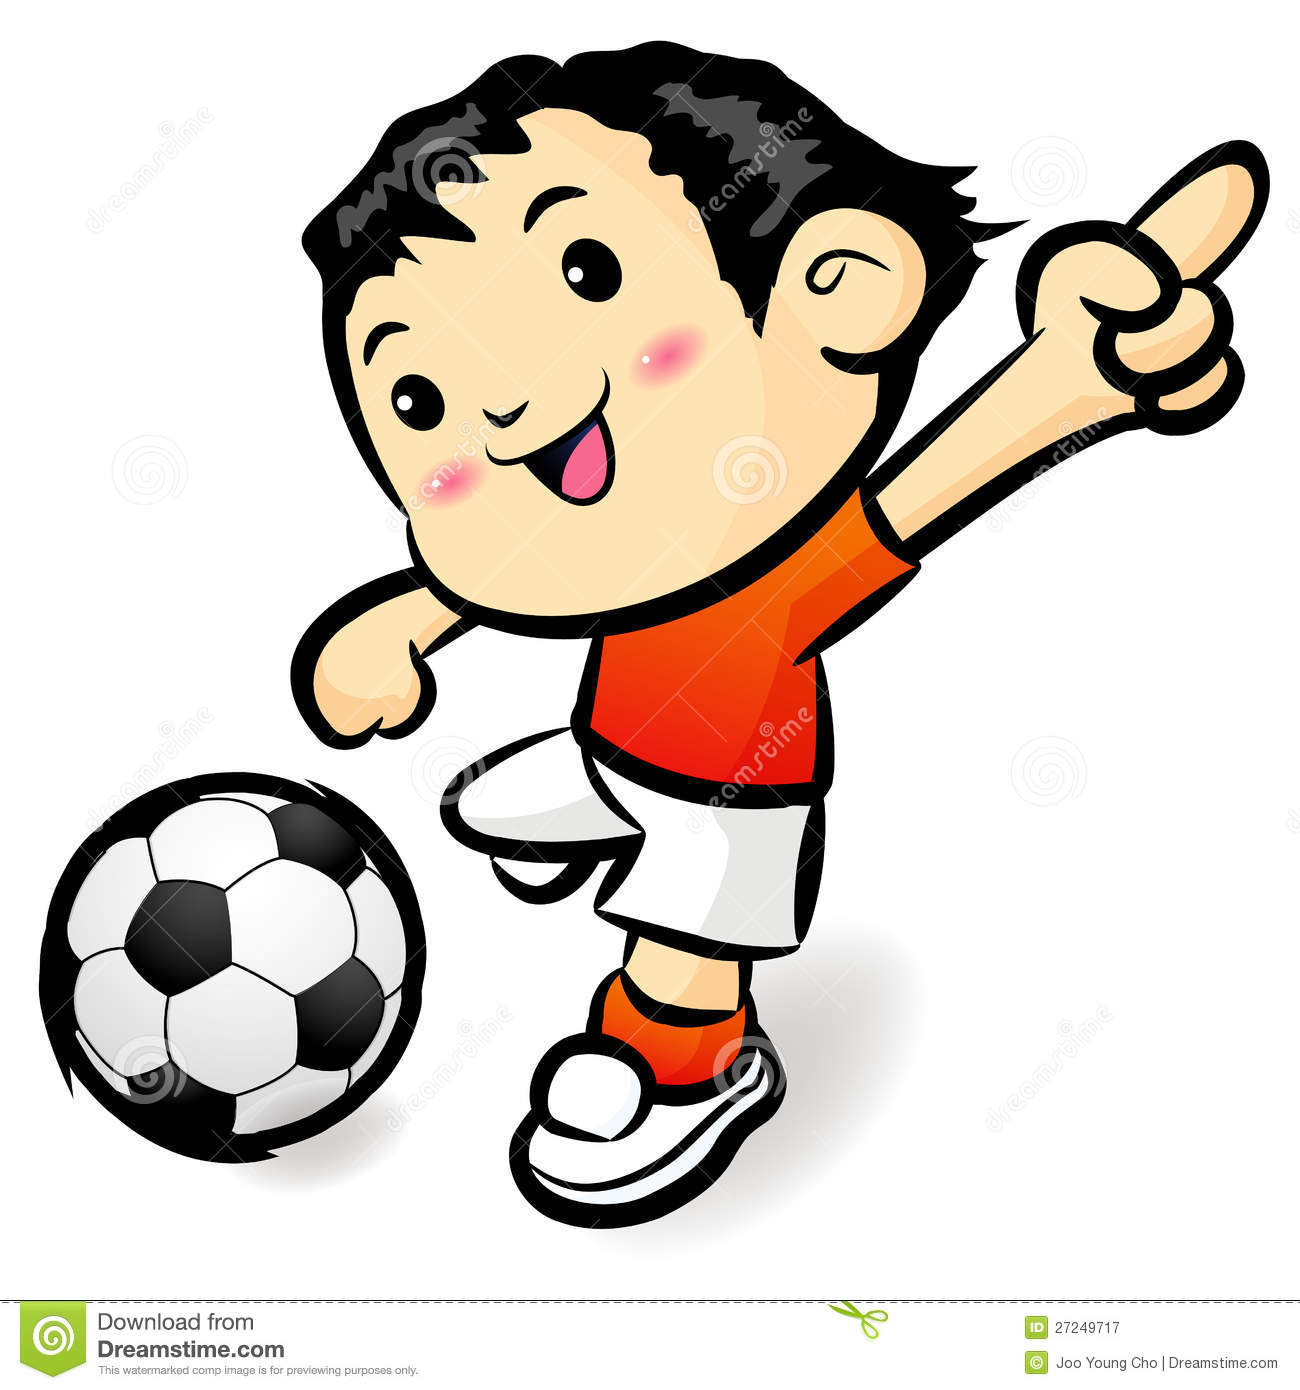 Cartoon Characters Playing Sports : Soccer games football player character stock illustration